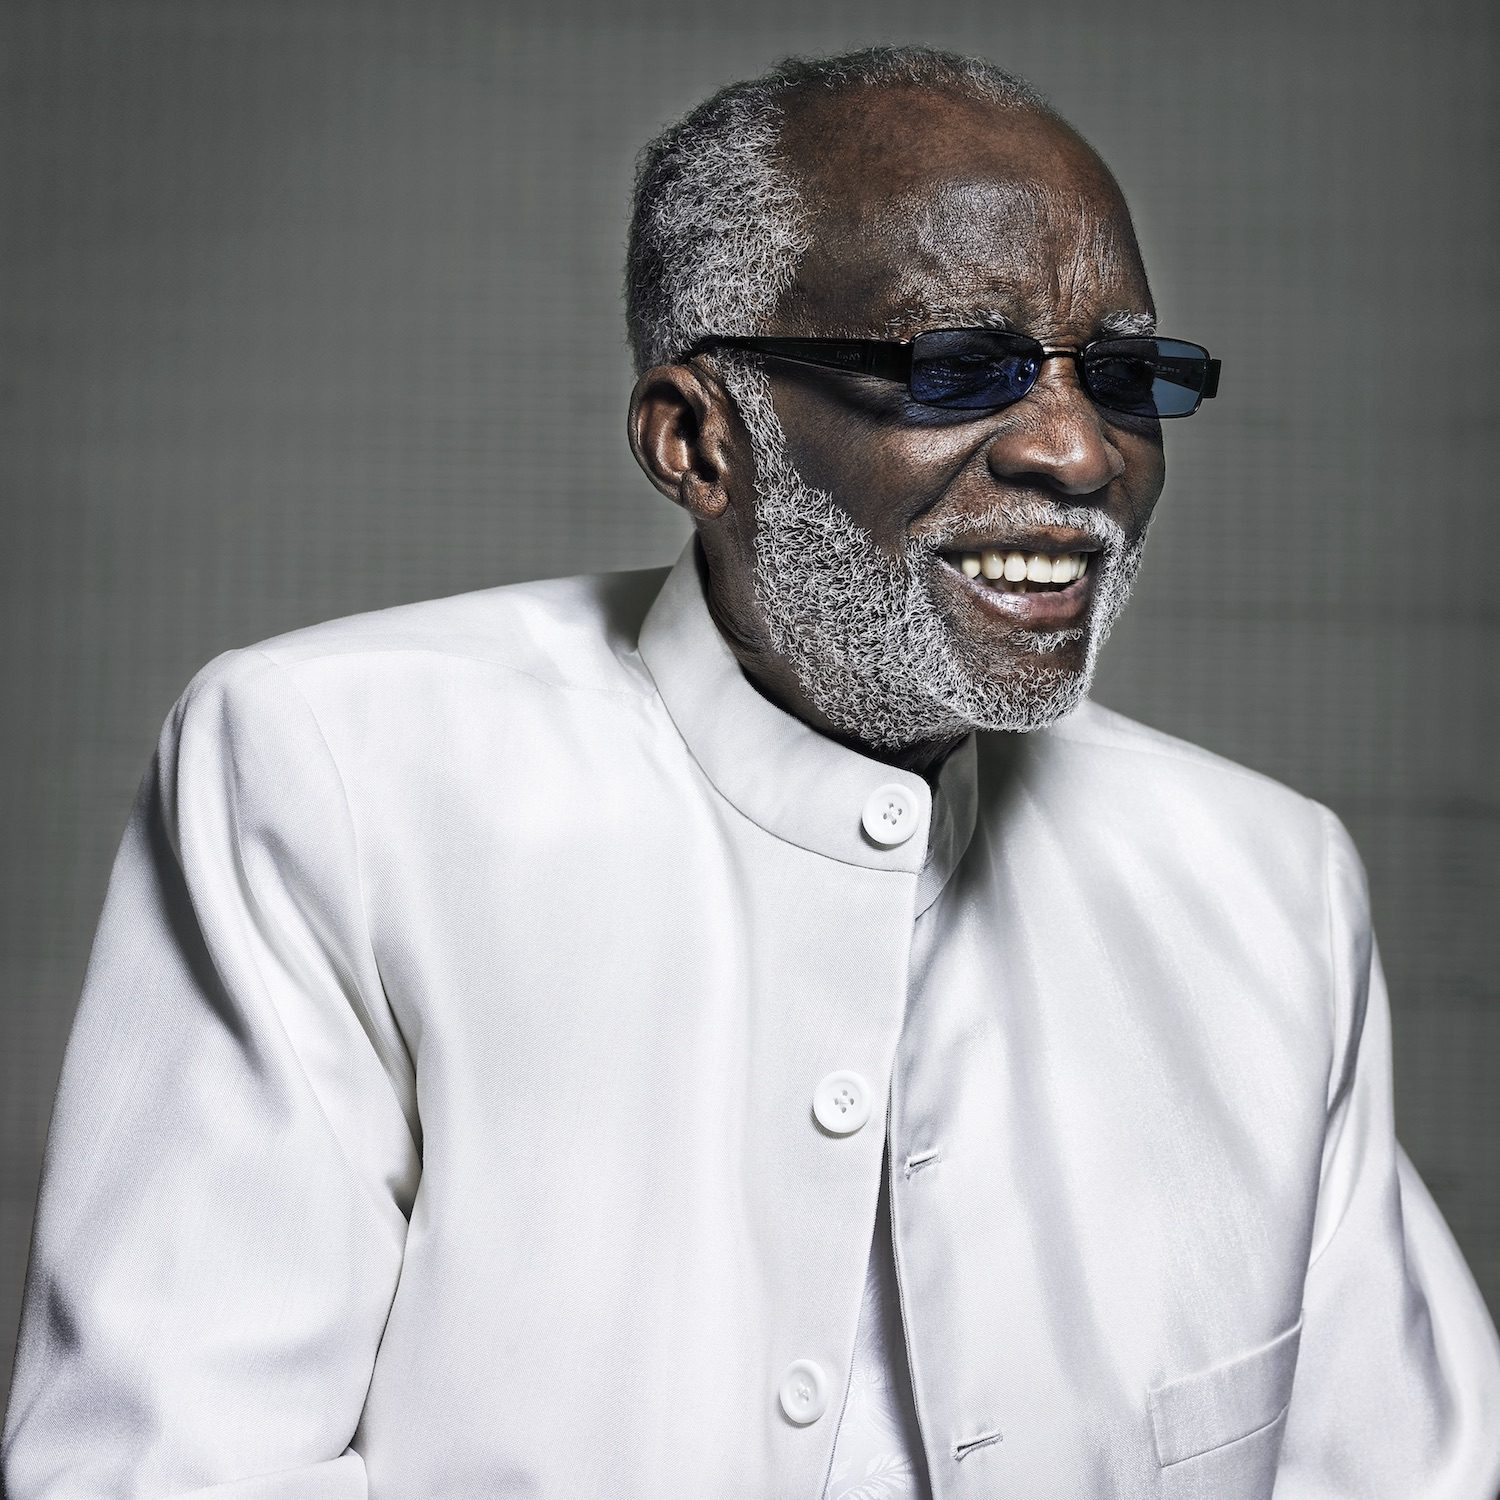 ahmad jamal in white suit